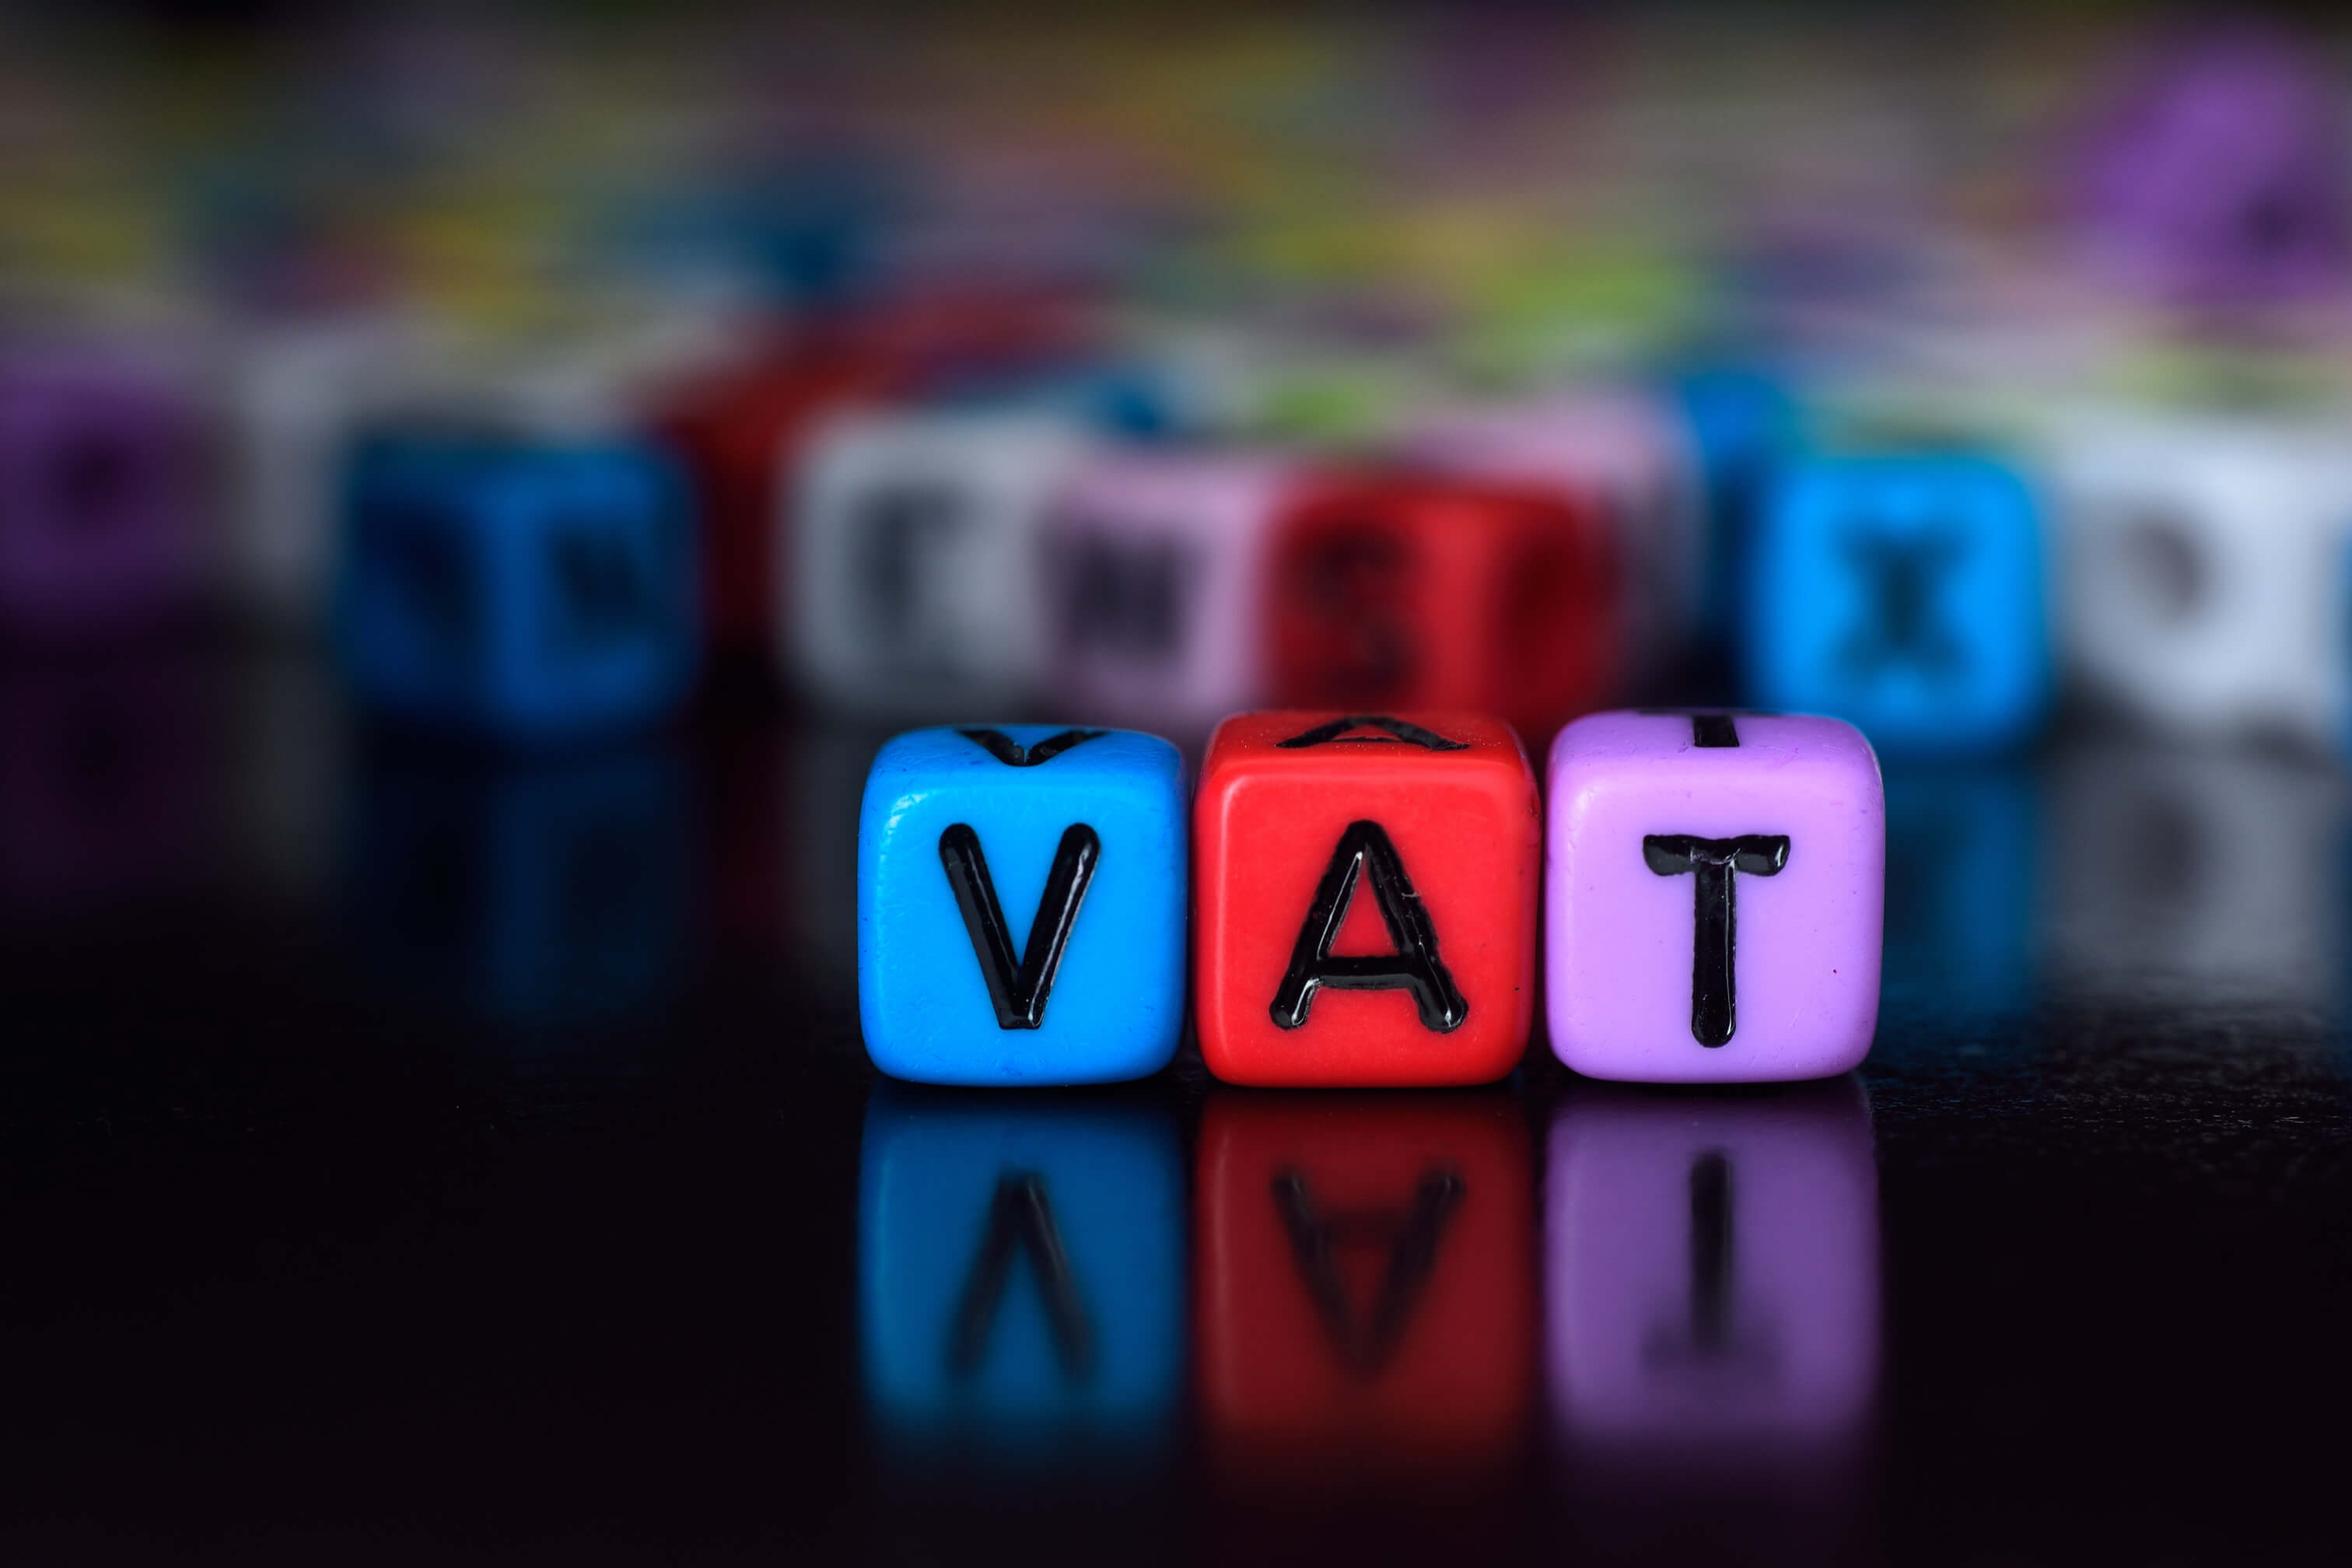 Does Uber have to pay VAT?